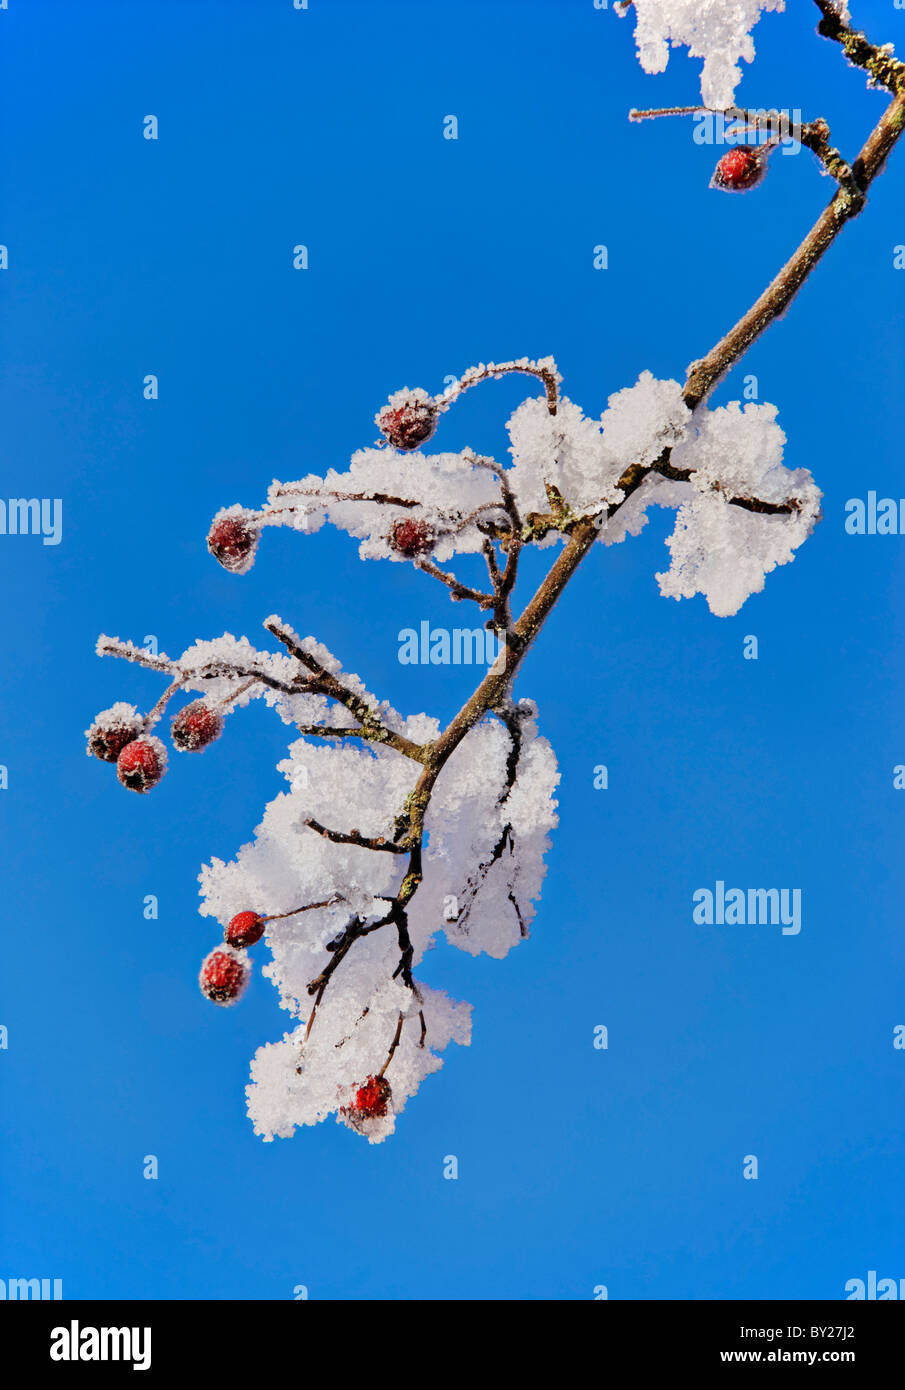 Hawthorn berries and snow set against a blue sky. - Stock Image